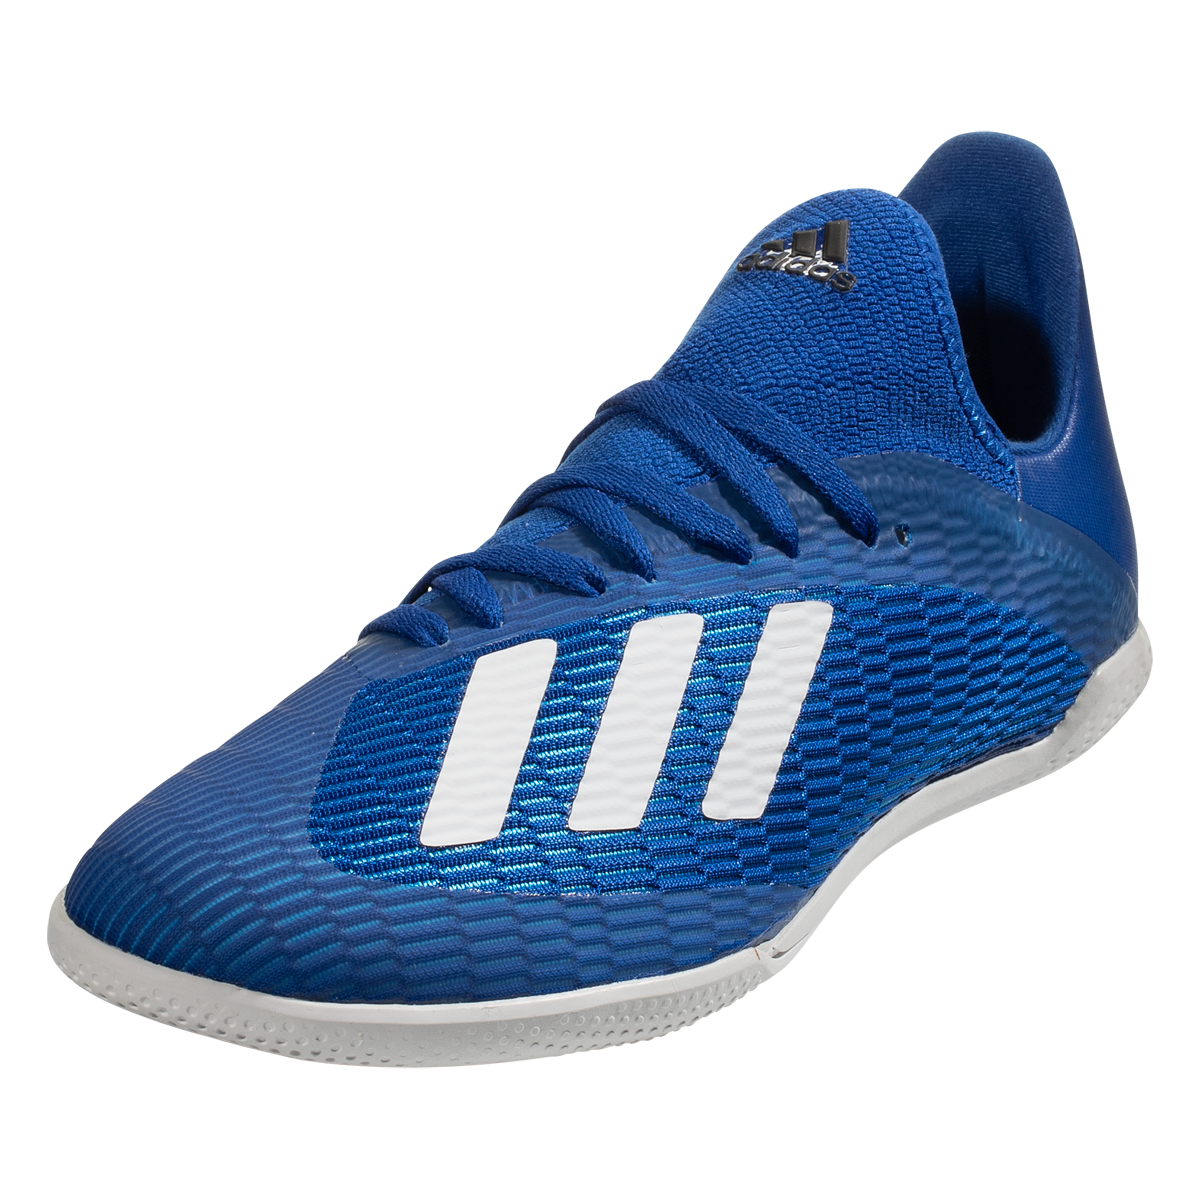 Adidas X 19 3 In Junior Indoor Soccer Shoes Royal Blue White Black 1 5 In 2020 Soccer Shoes Indoor Soccer Blue White